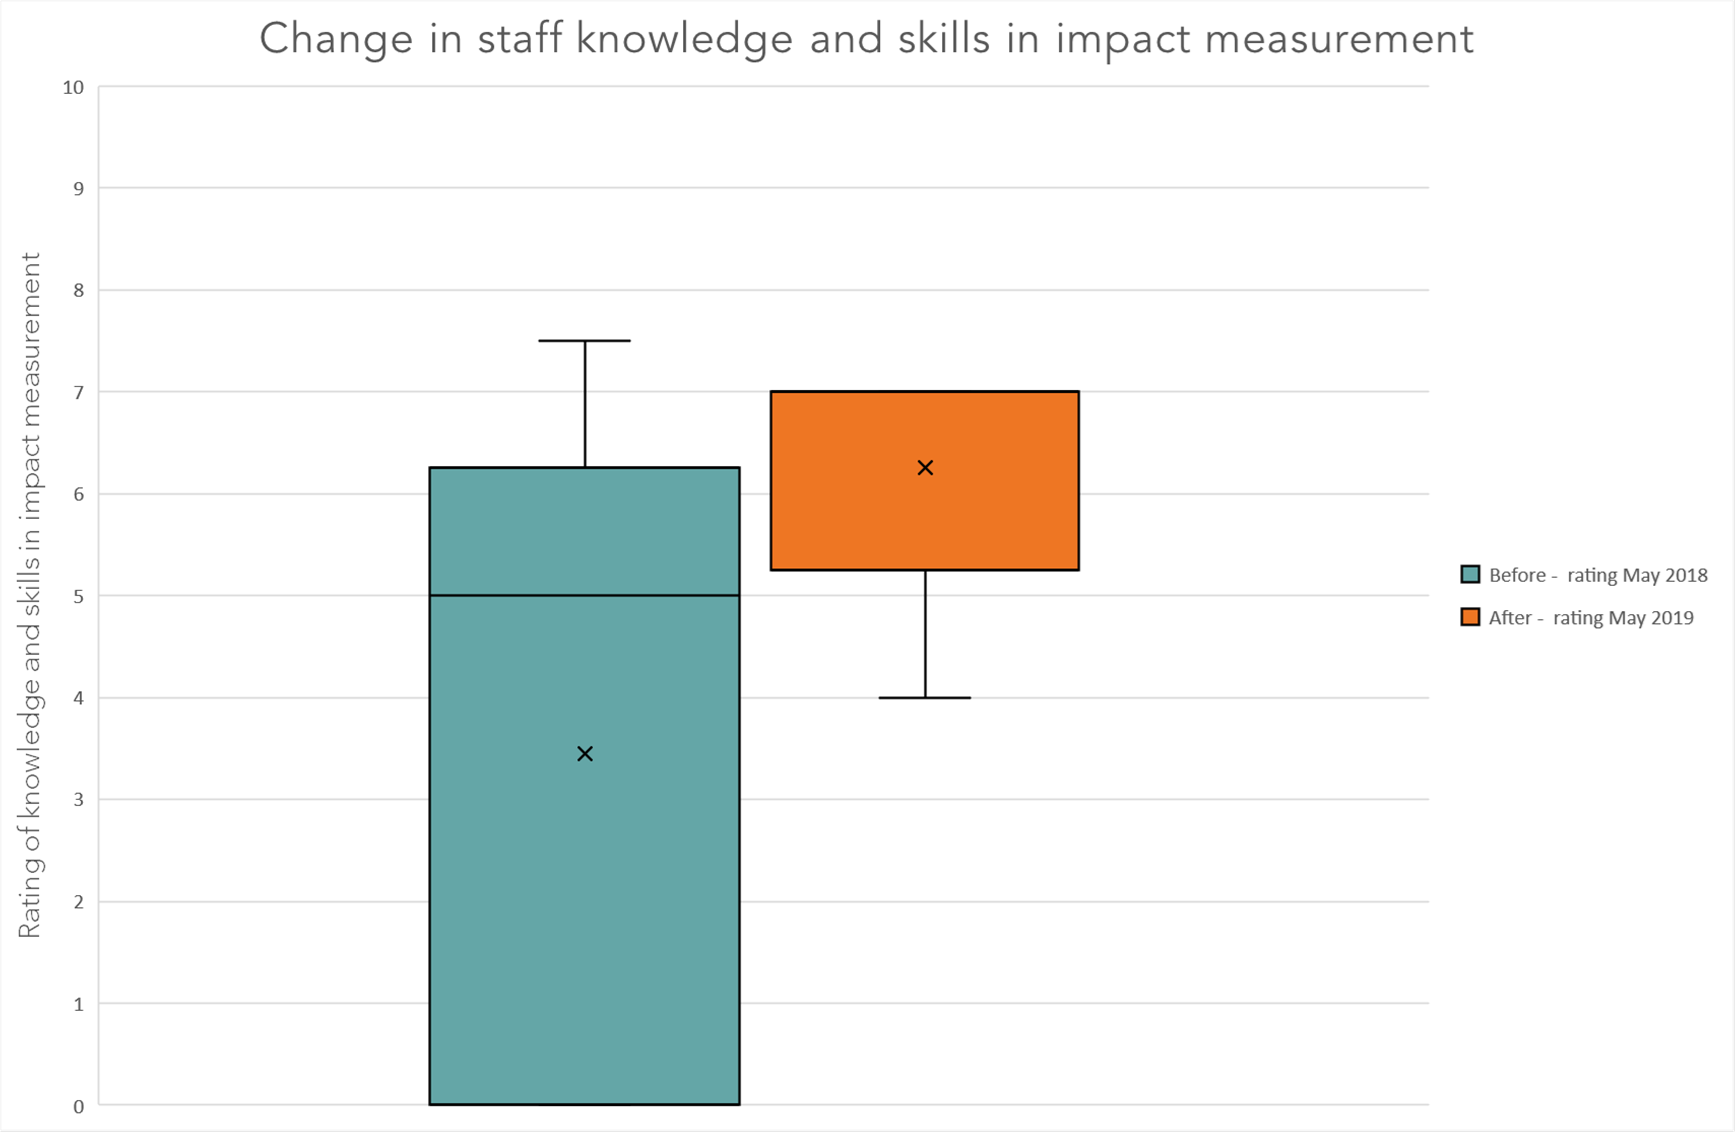 Boxplot chart showing how staff rated their knowledge and skills in impact measurement before and after Data Orchard's support. The coloured box represents the middle range of responses, the 'x' is the mean average, and the horizontal line is the median average response.